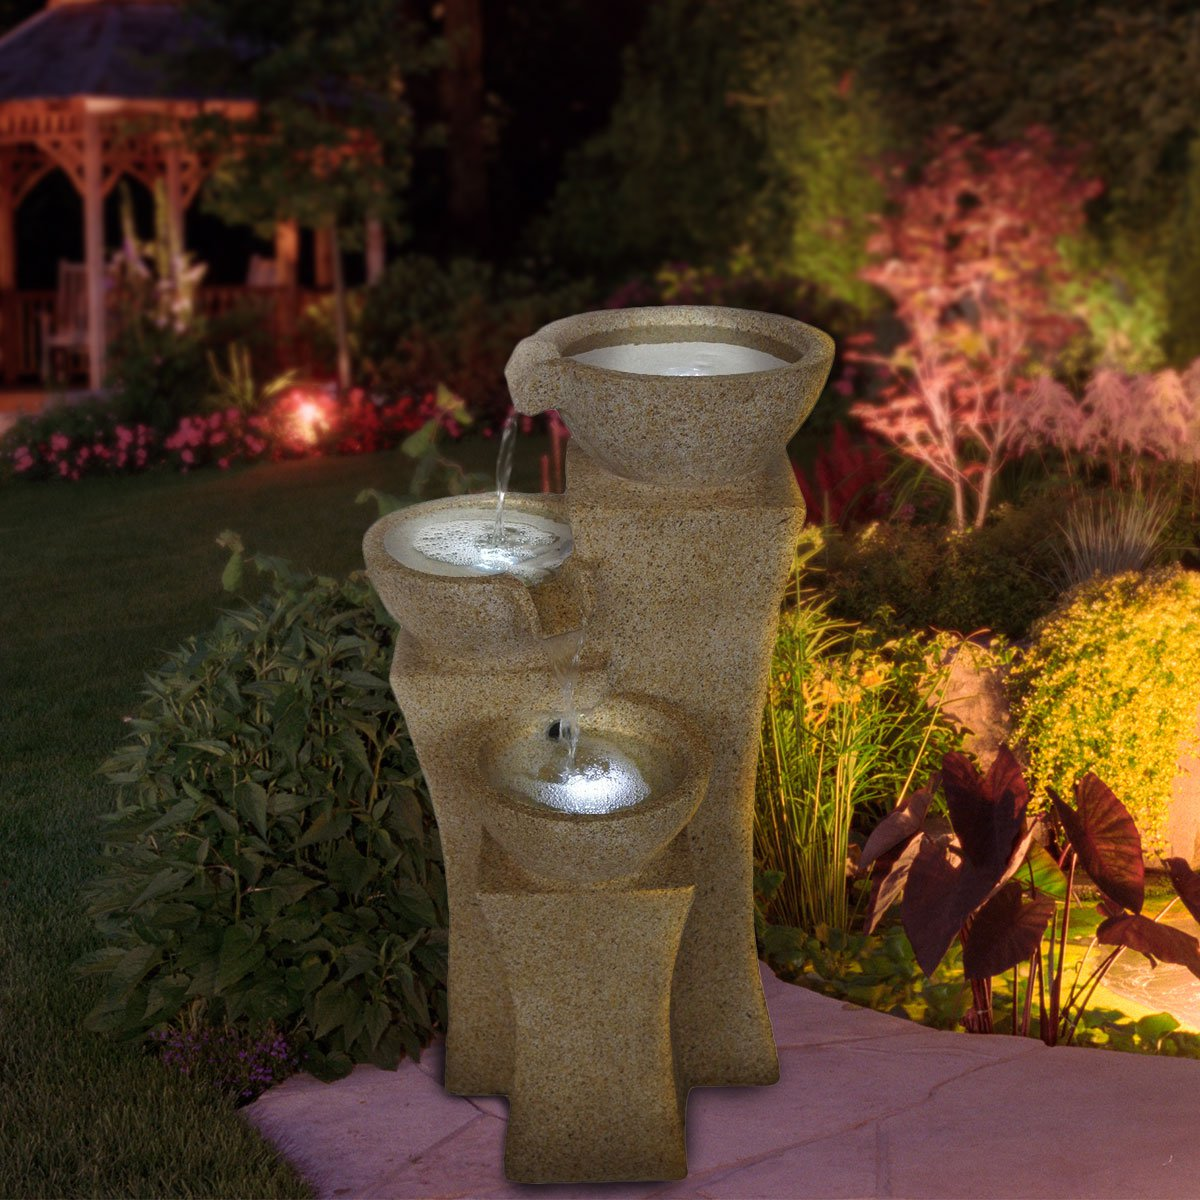 Pure Garden Cascade Bowls Outdoor Fountain With LED Lights   Walmart.com